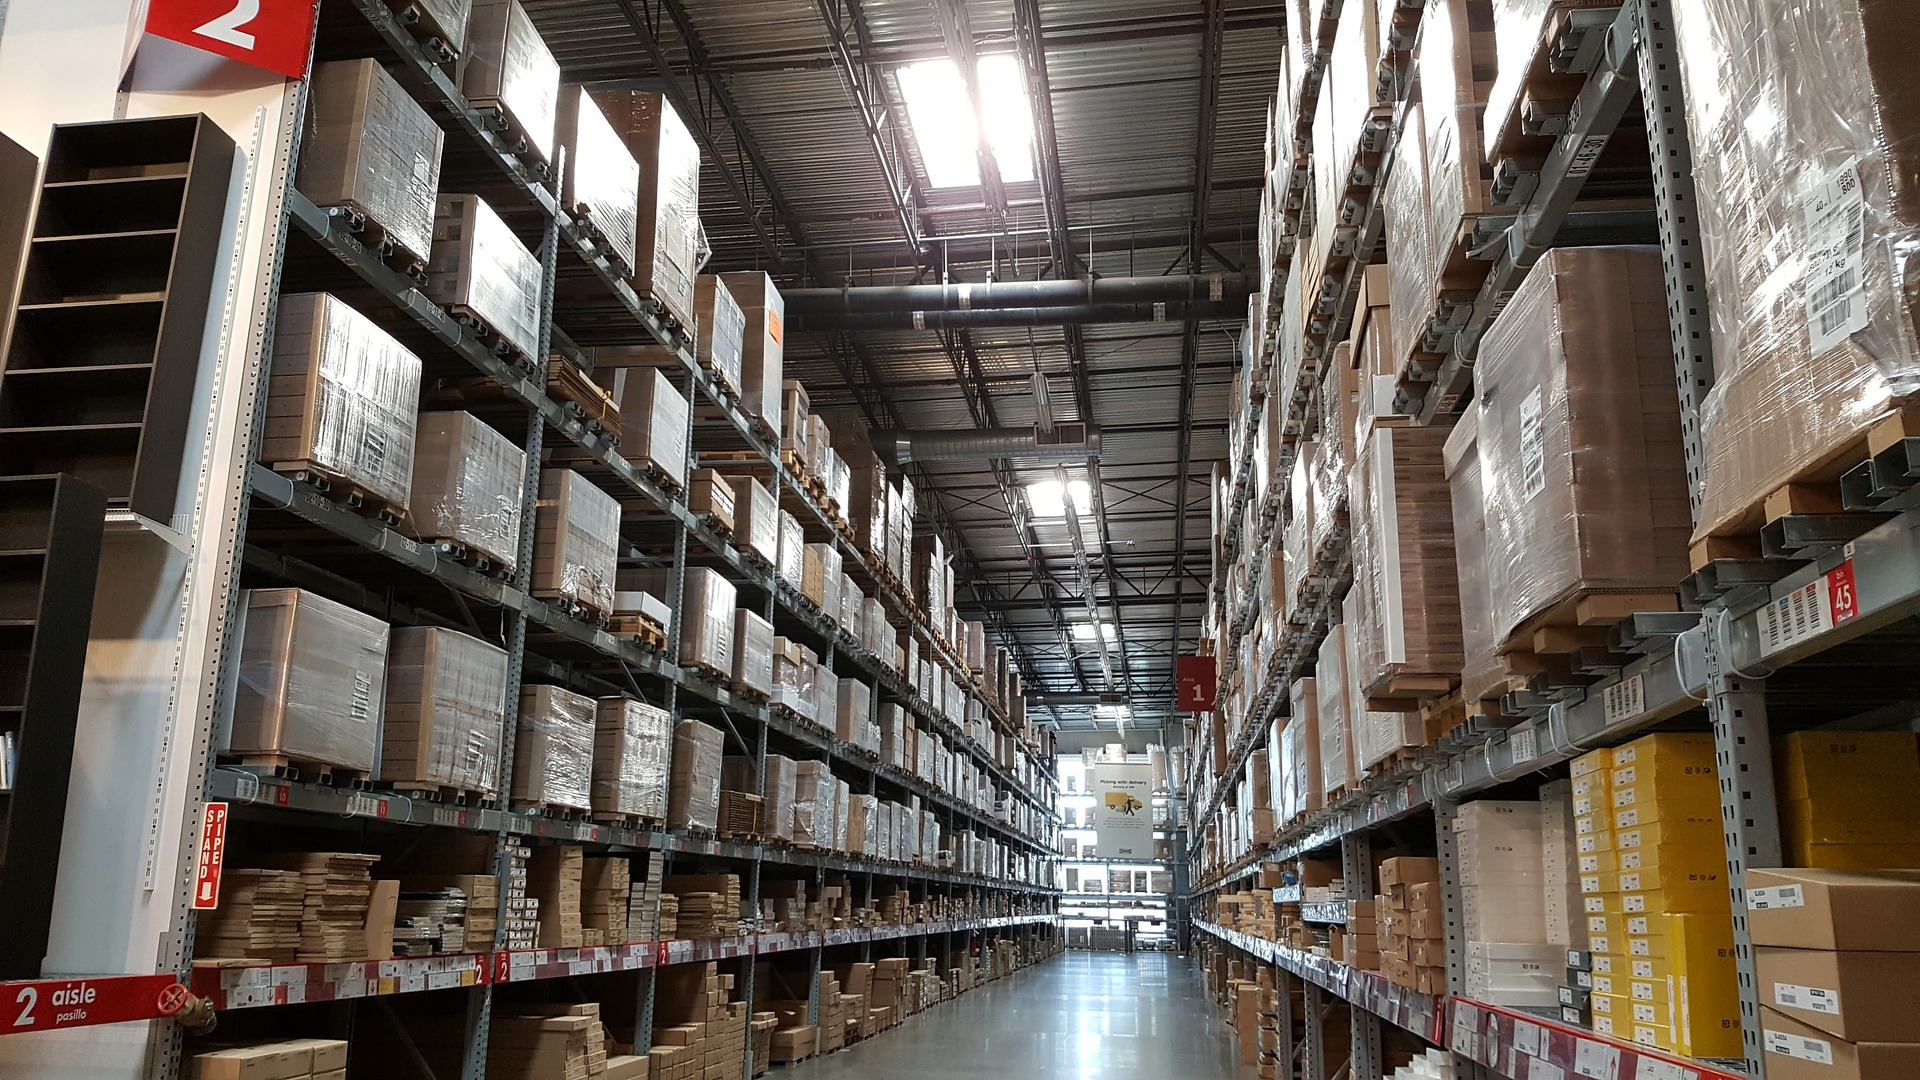 A warehouse which would benefit from a hand forklift due to all of this stock.